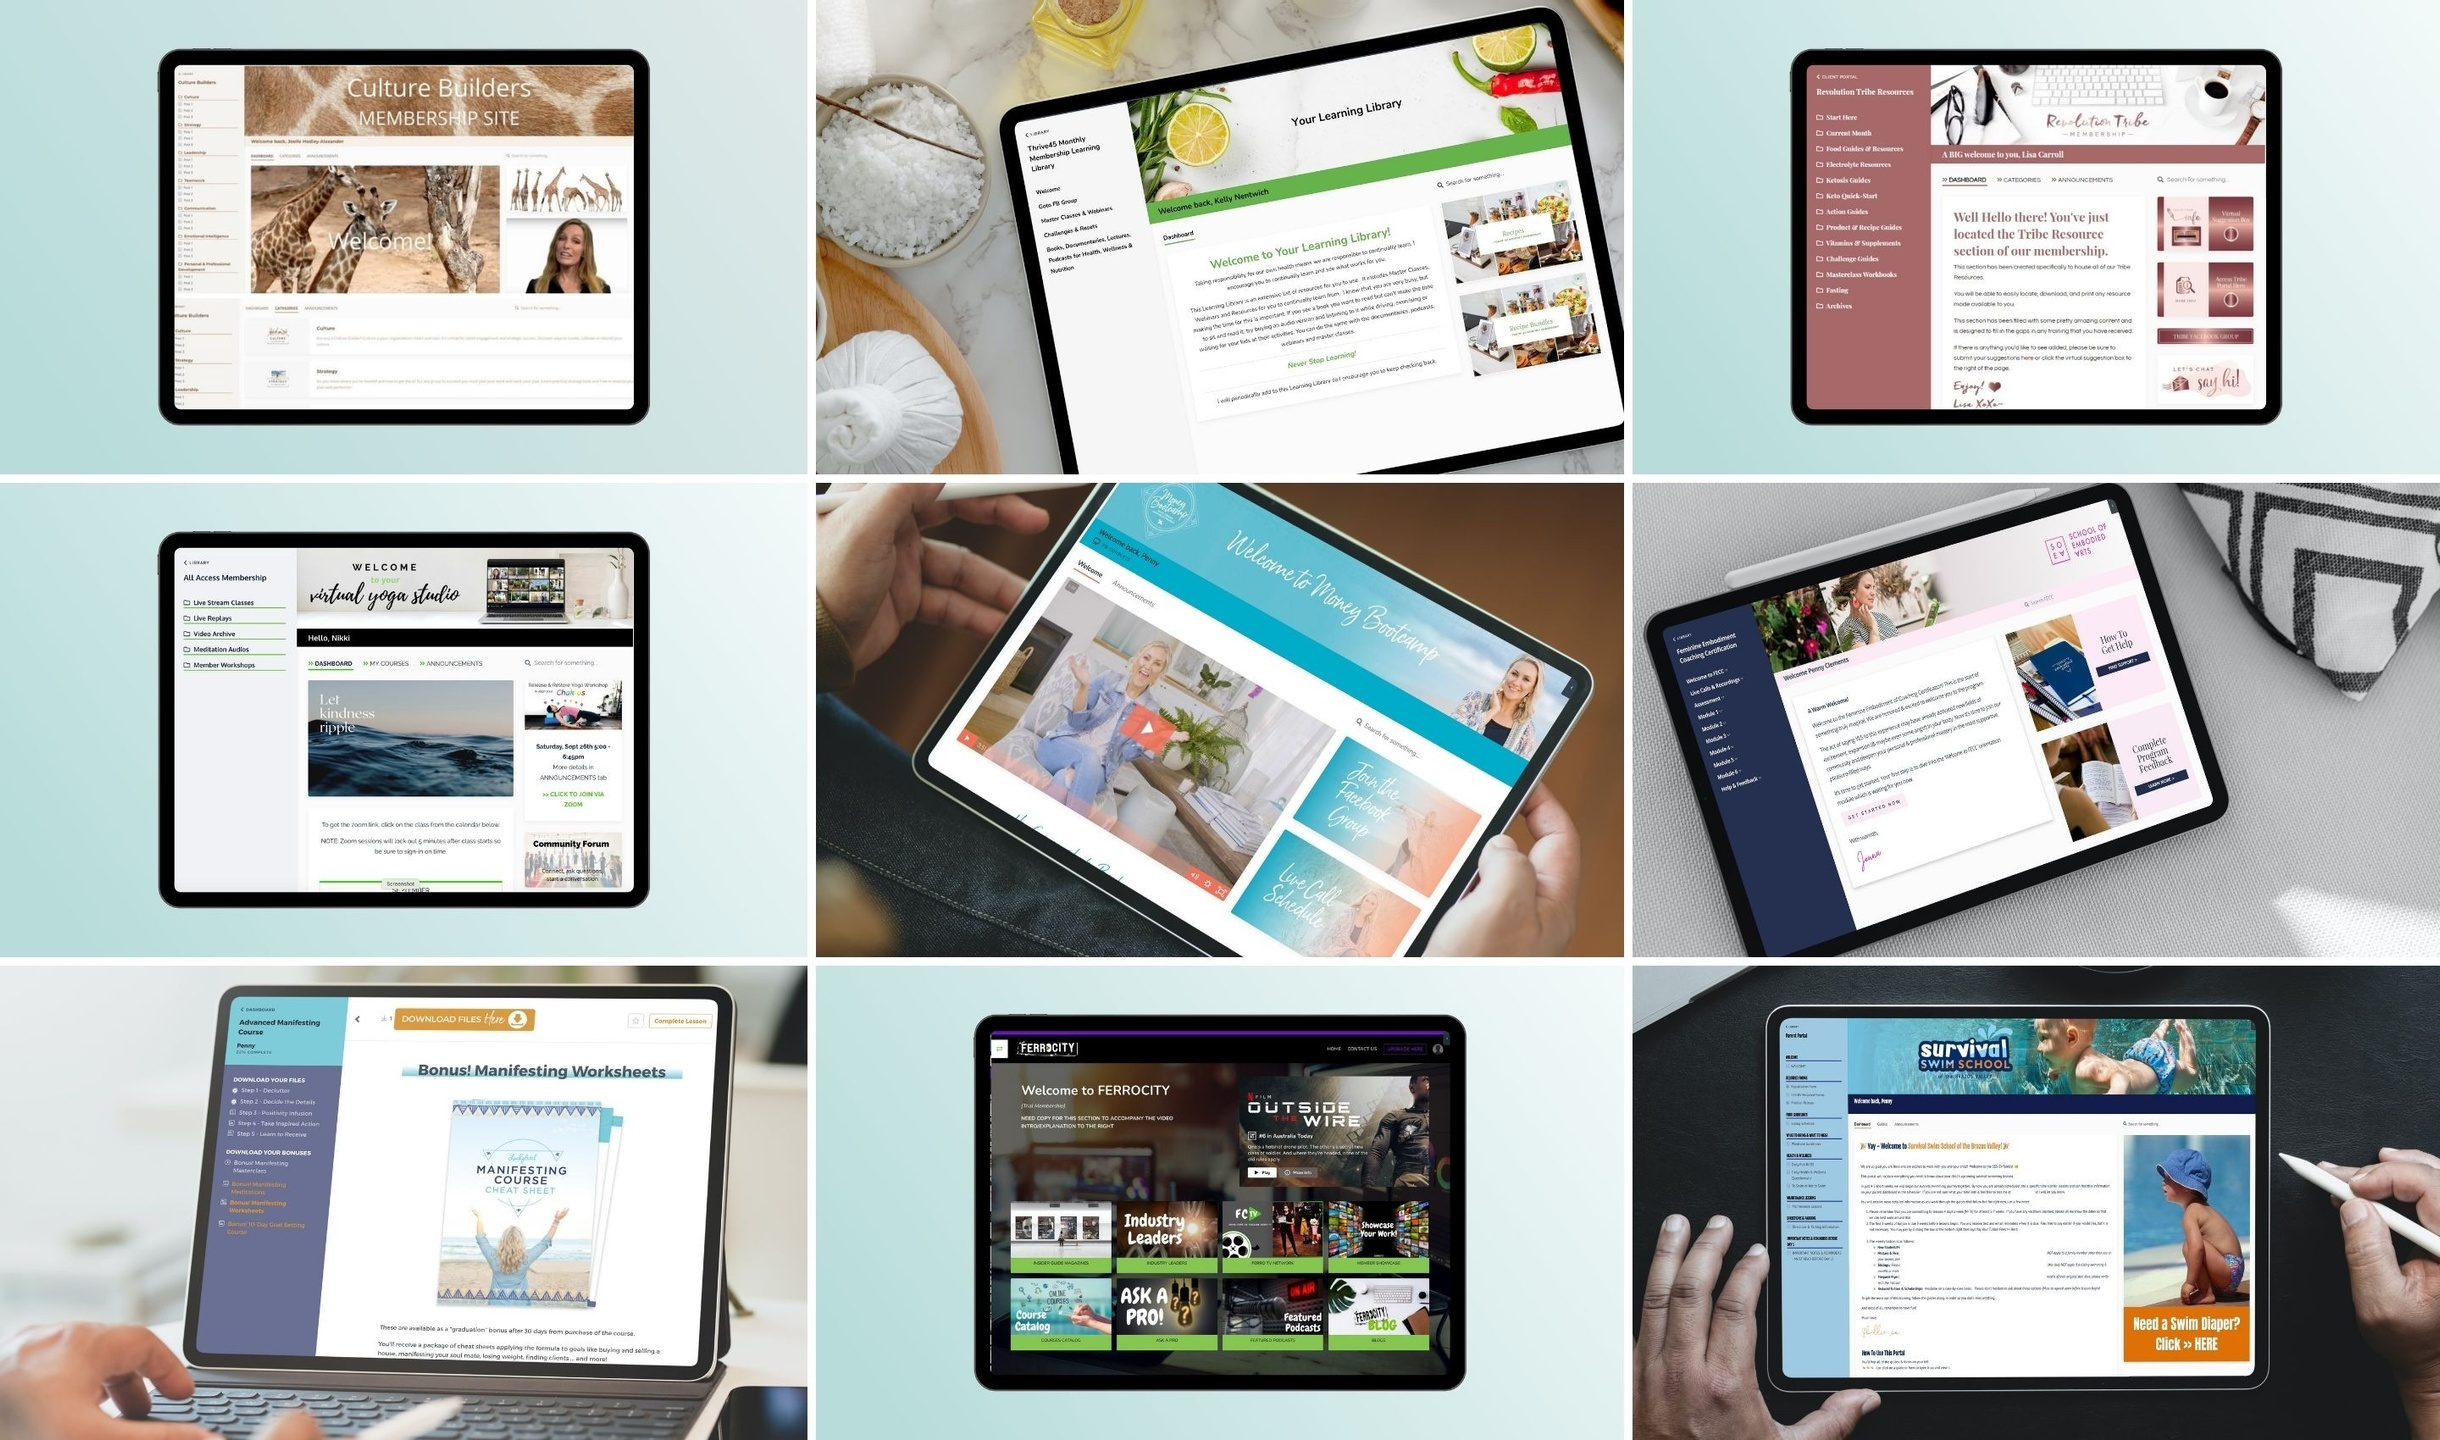 tablet and laptop mockup views of Kajabi Product Themes and Templates